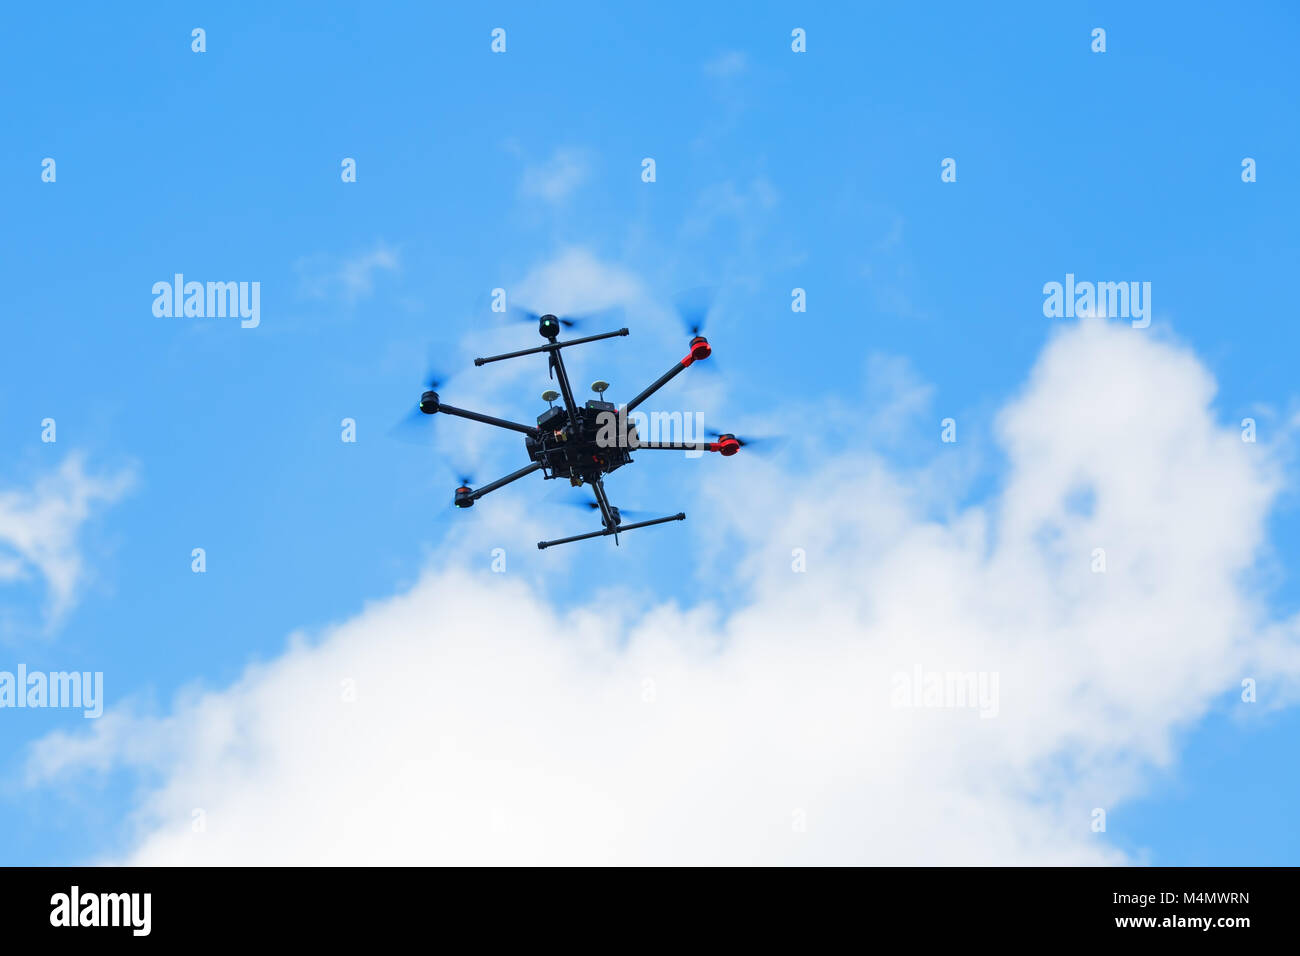 Flying hexacopter drone - Stock Image